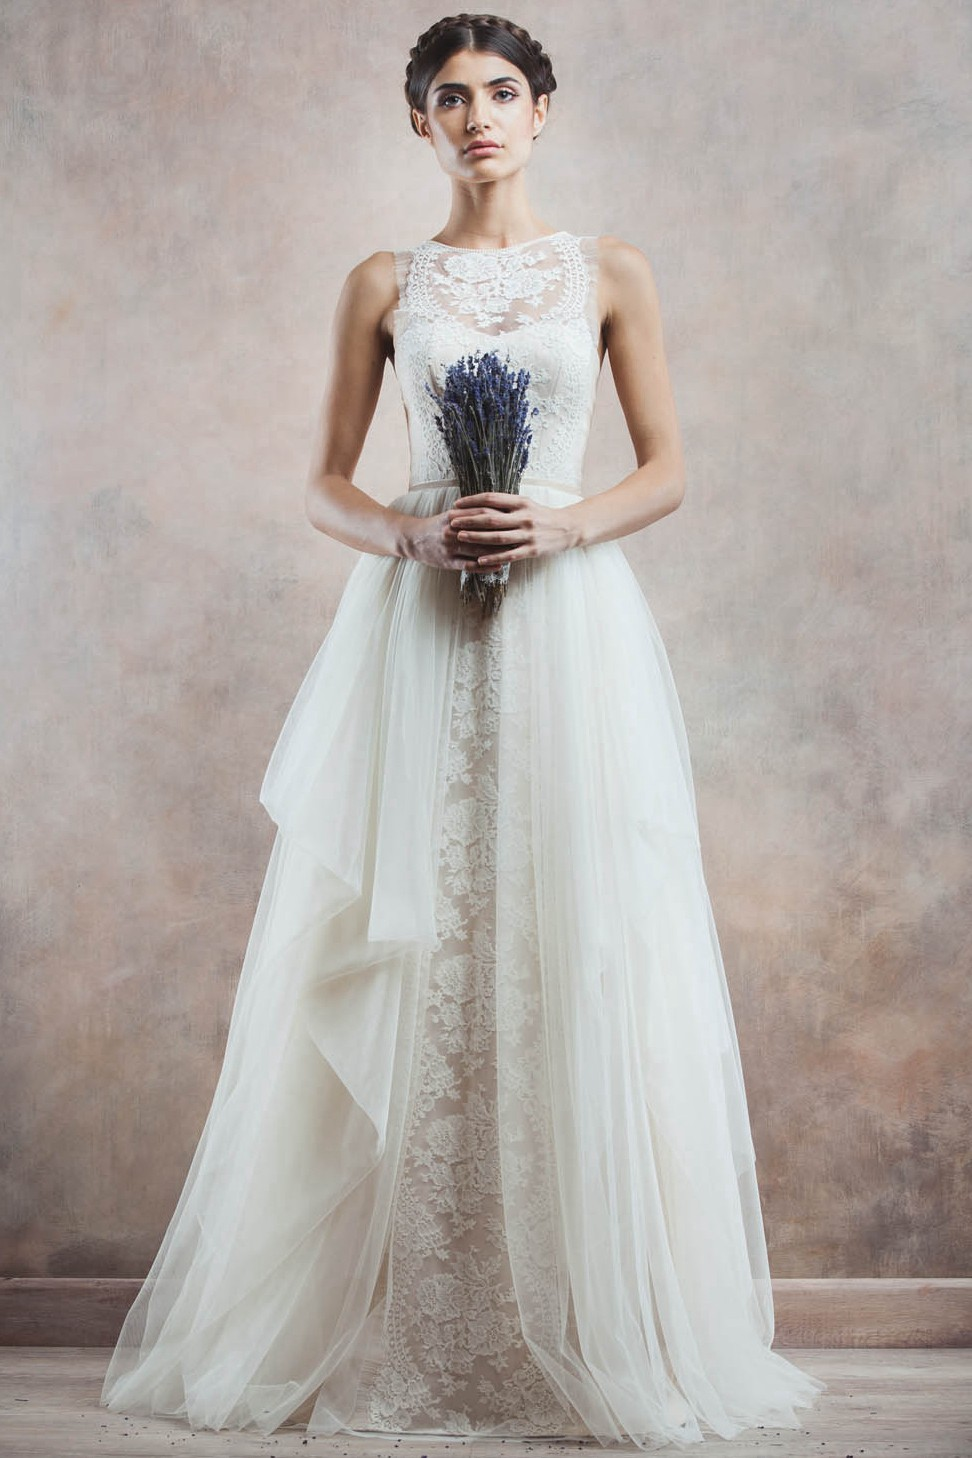 Wedding Dresses With Illusion Bodice : Sleeeveless illusion neck lace bodice ball gown cascaded